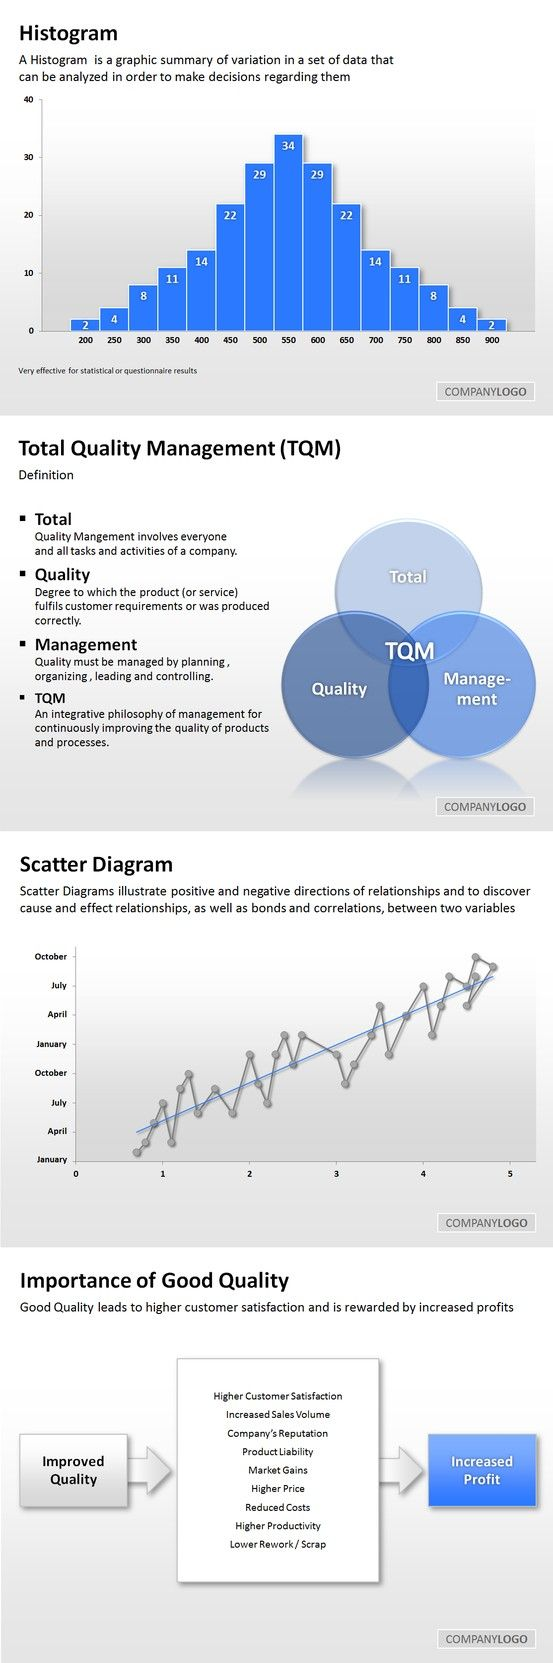 Best Total Quality Management Images On   Management